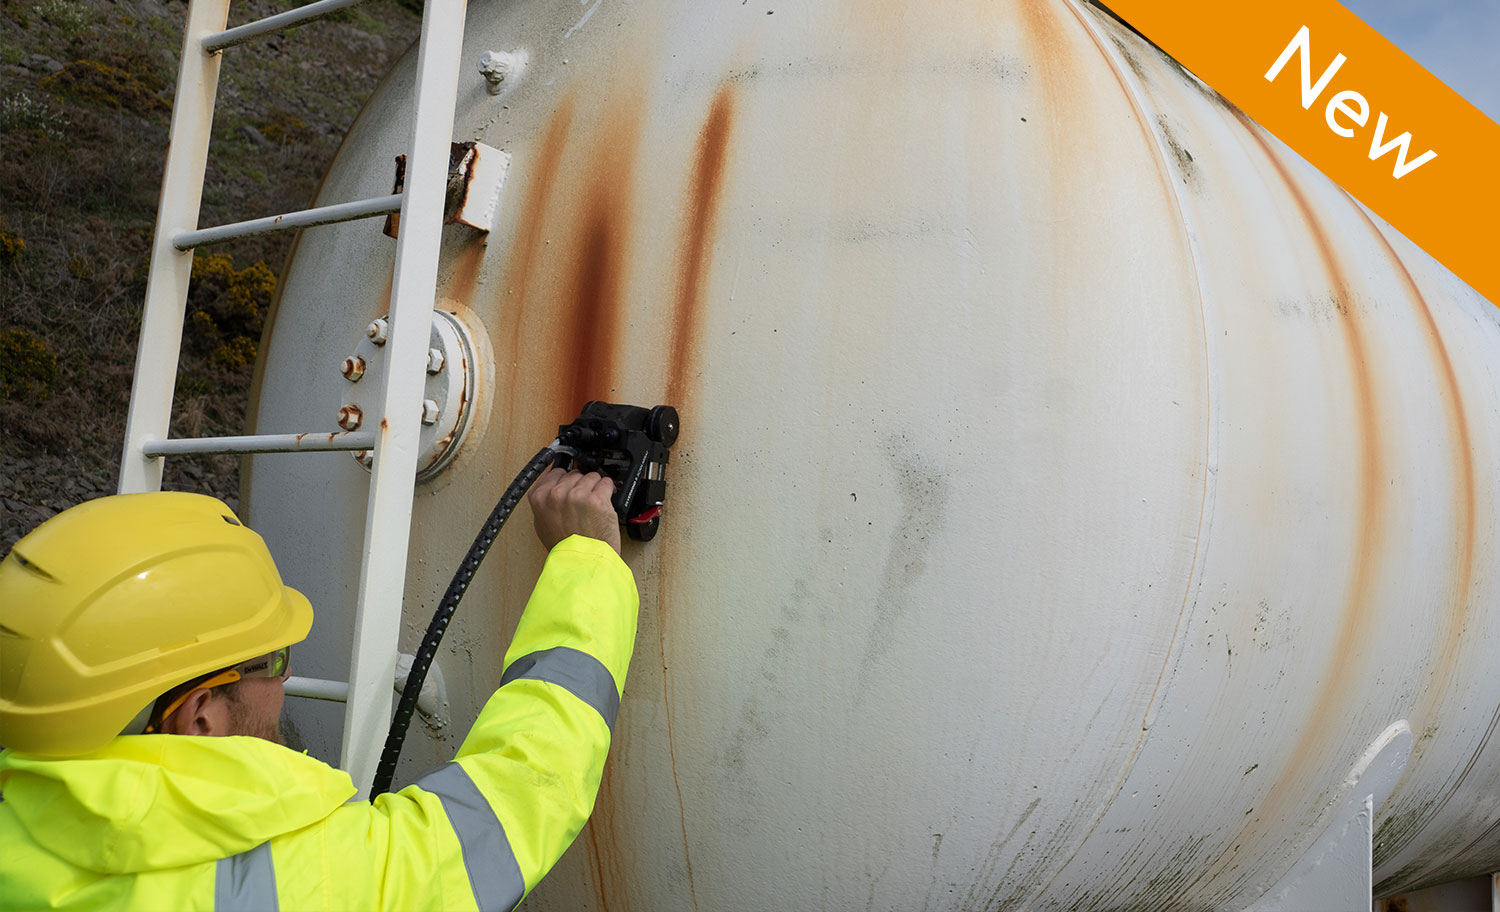 R-Scan array corrosion mapping